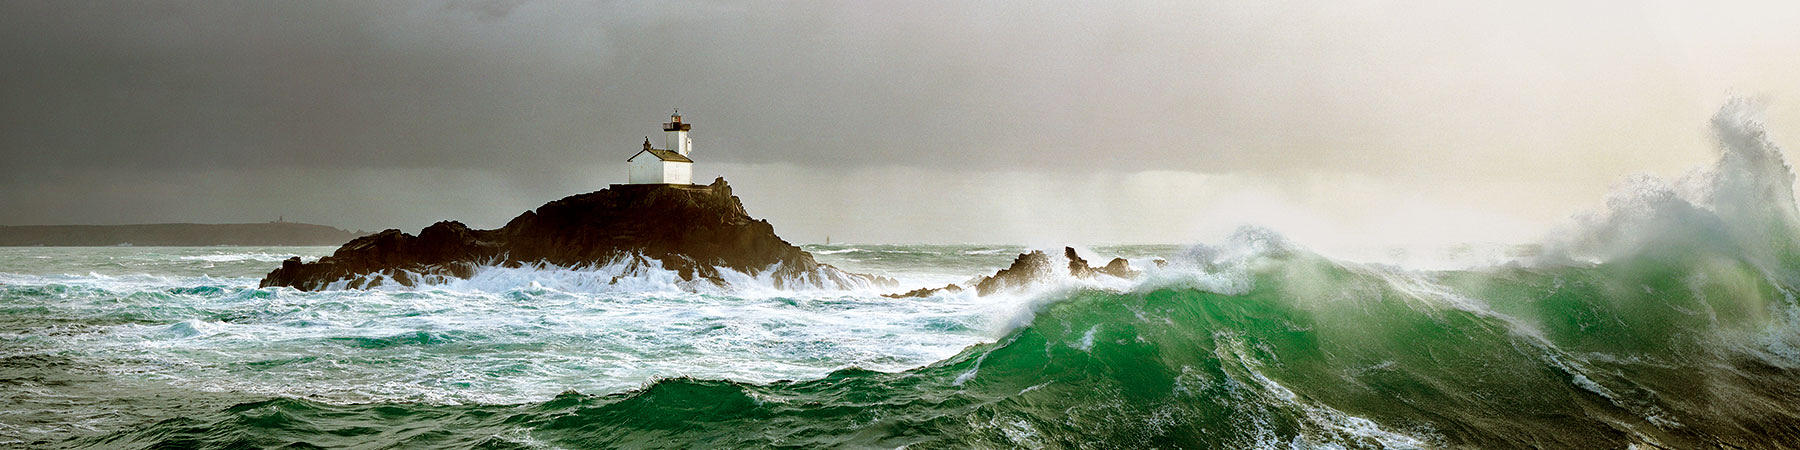 French Lighthouses - Photo Plisson